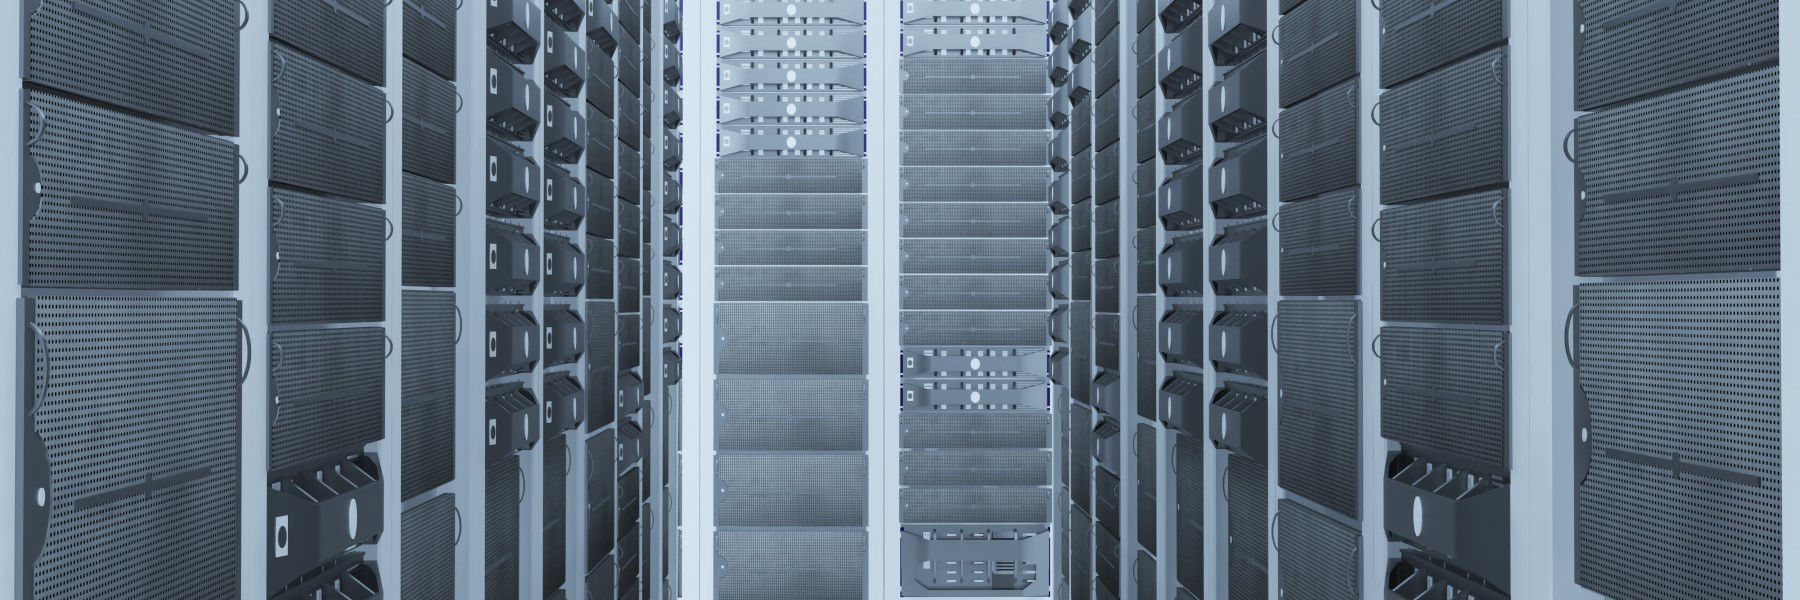 how to migrate your mainframe to the cloud image